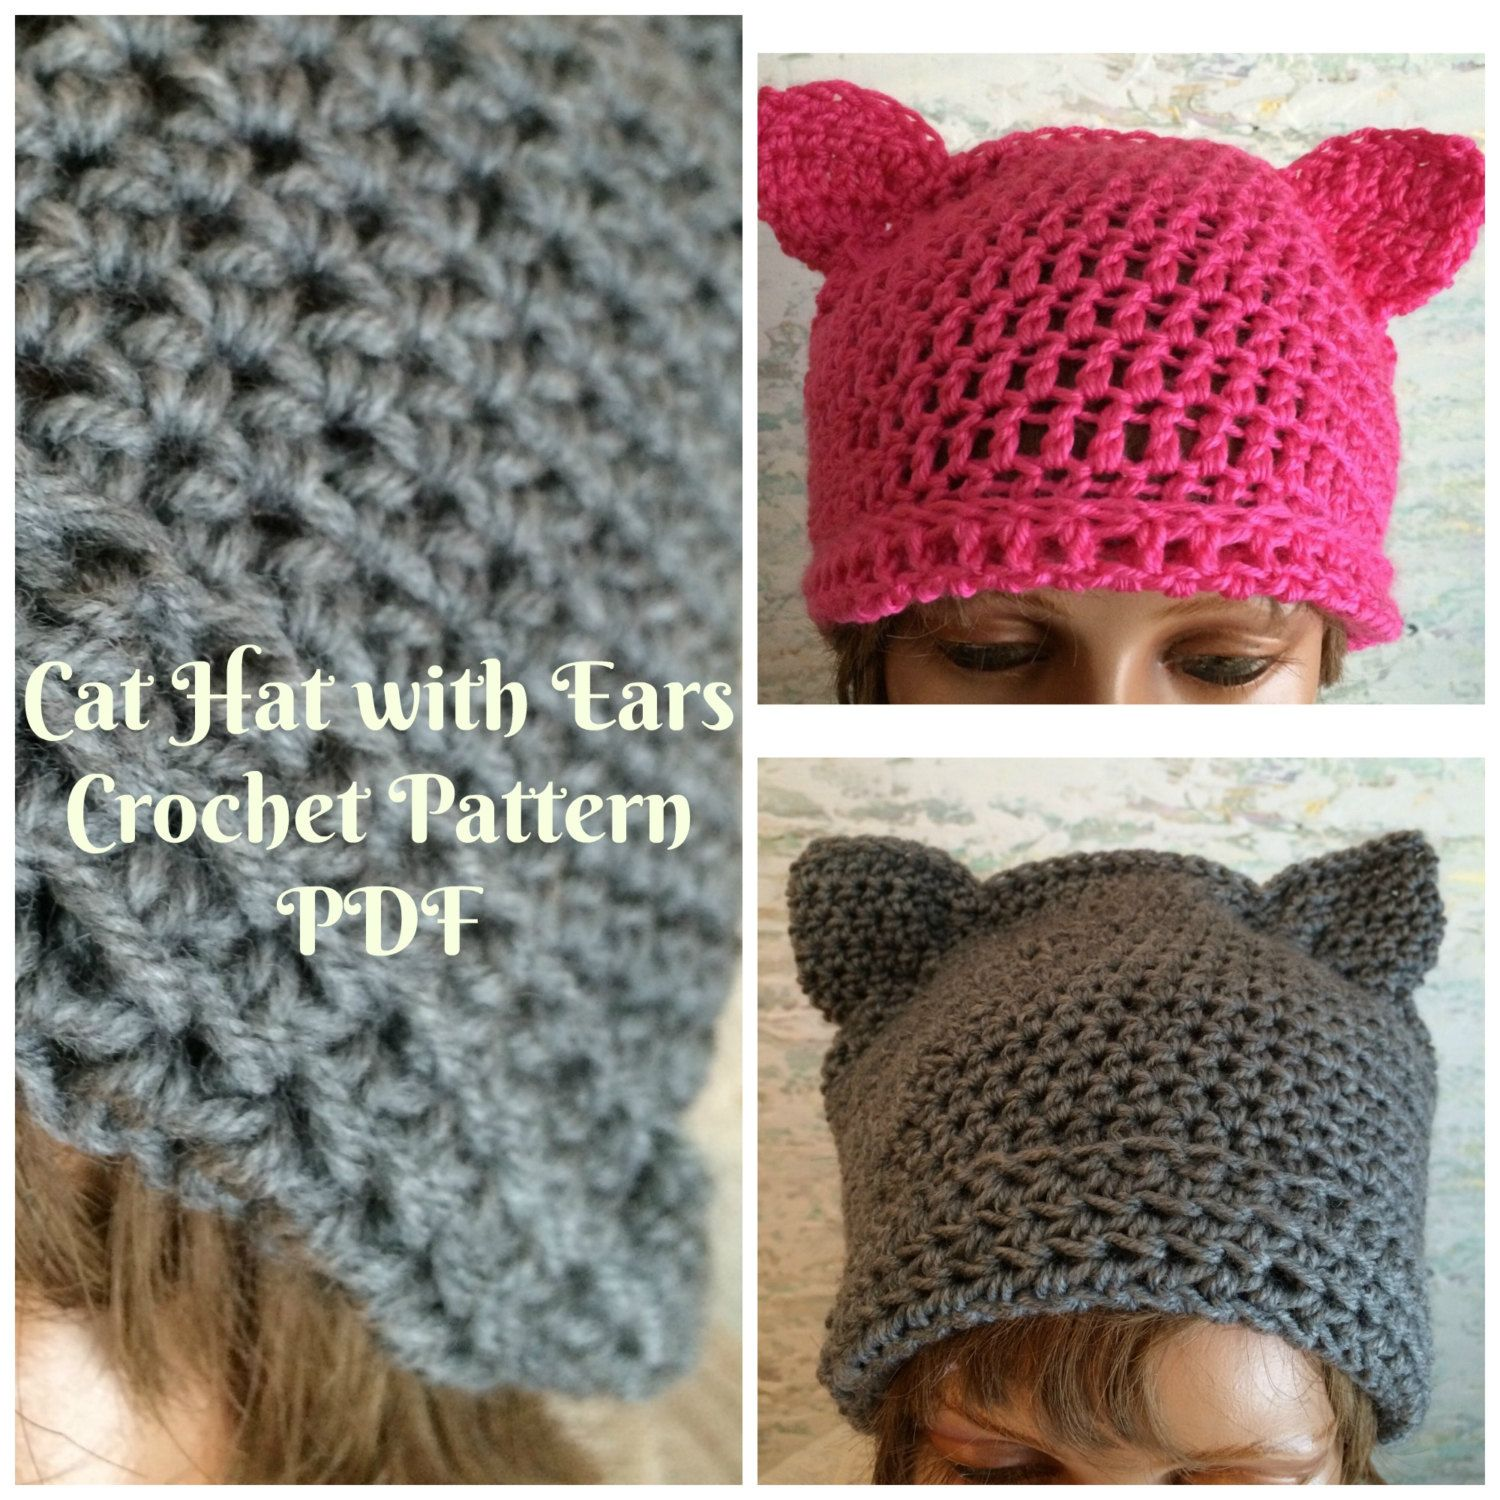 Pussy hat with shaped ears crochet pattern pussy hat pattern pdf pussy hat with shaped ears crochet pattern pussy hat pattern pdf download cat hat bankloansurffo Choice Image